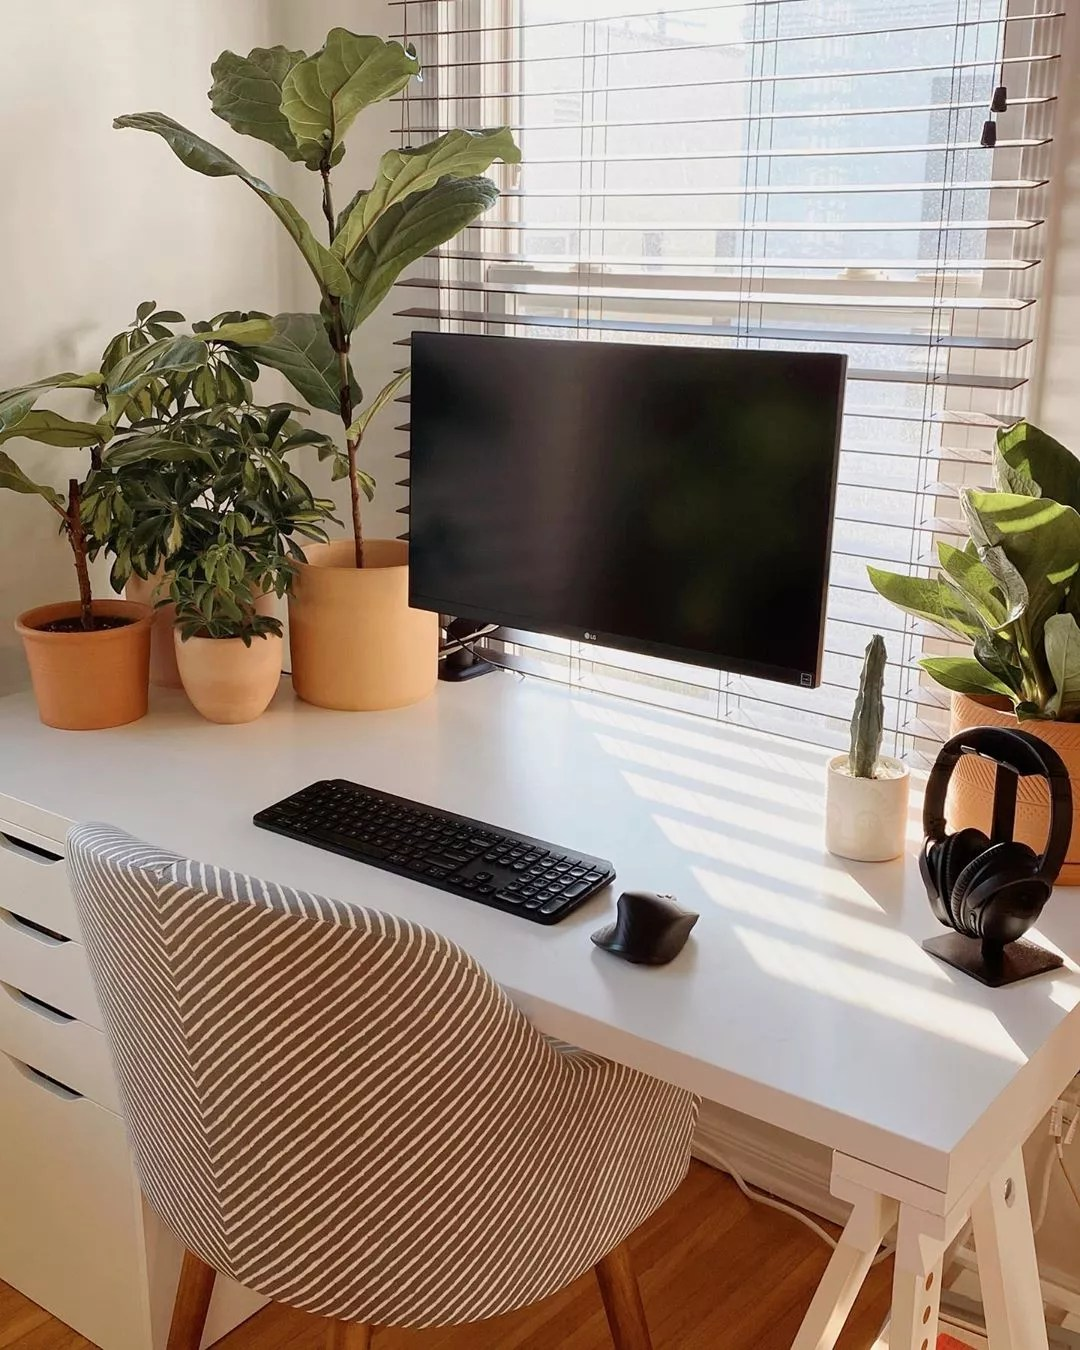 Desk with computer surrounded by plants. Photo by Instagram user @ashleyhosmer